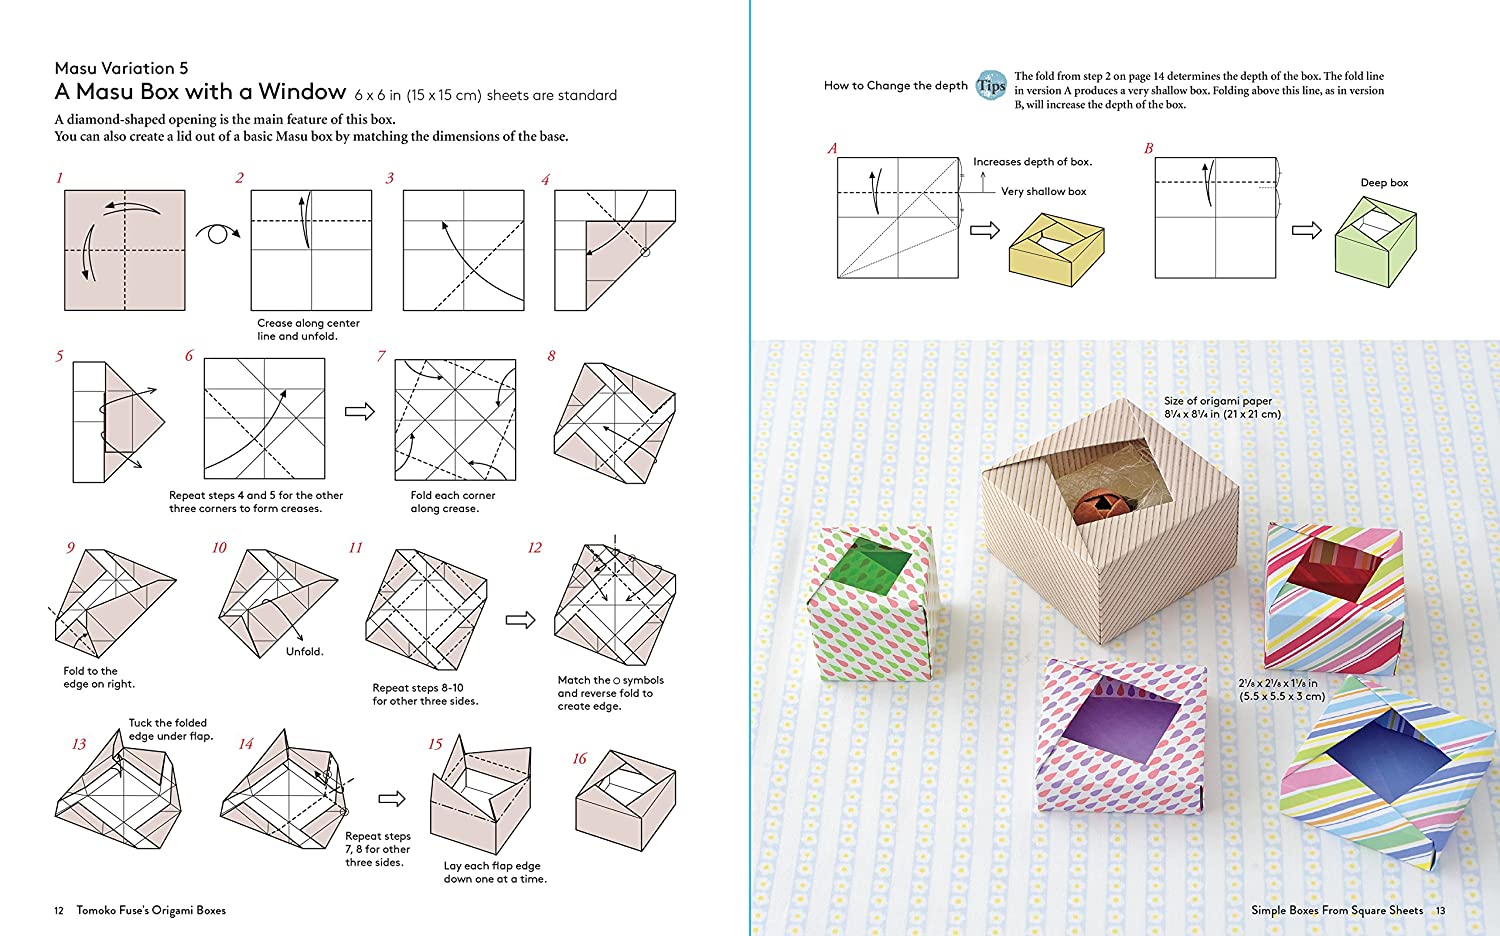 ... amazon com tomoko fuse's origami boxes book tomoko fuse (author Origami  Spiral amazon com tomoko